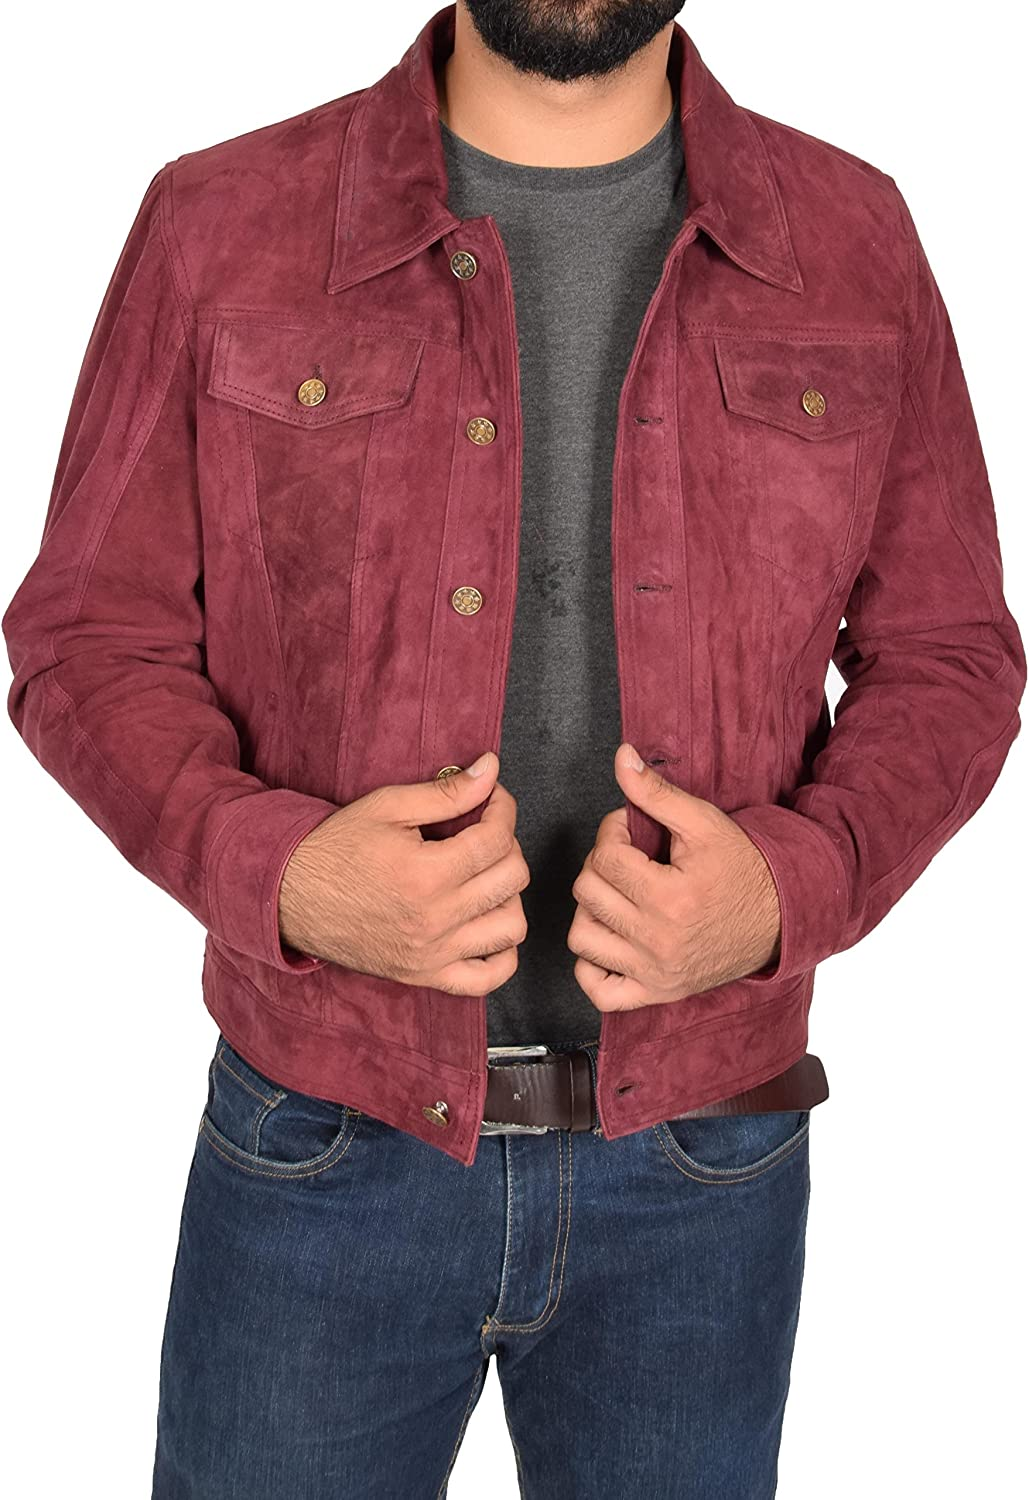 Infinity Mens Trucker Casual Burgundy Goat Suede Leather Shirt Jeans Jacke